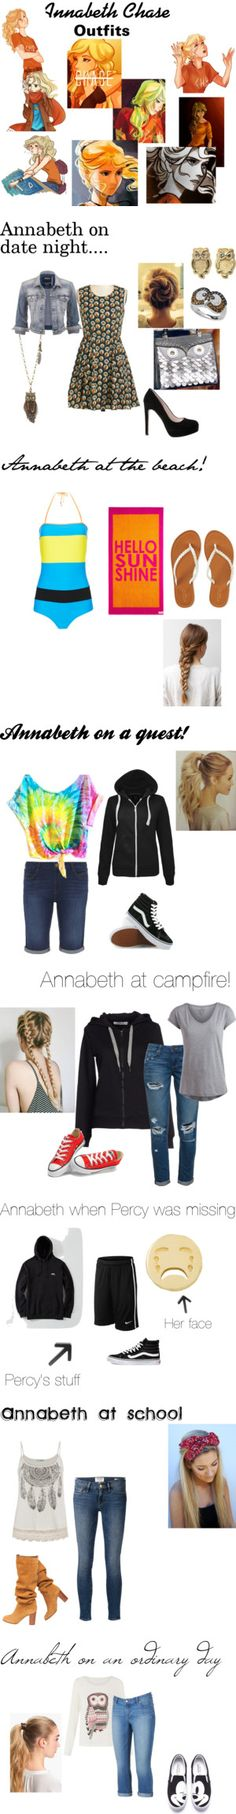 Annabeth Chase outfits! by broadwaygeek on Polyvore featuring art, De Siena, Silver Jeans Co., Youshine, De Buman, Aéropostale, Roksanda Ilincic, Dorothy Perkins, Vans and ONLY